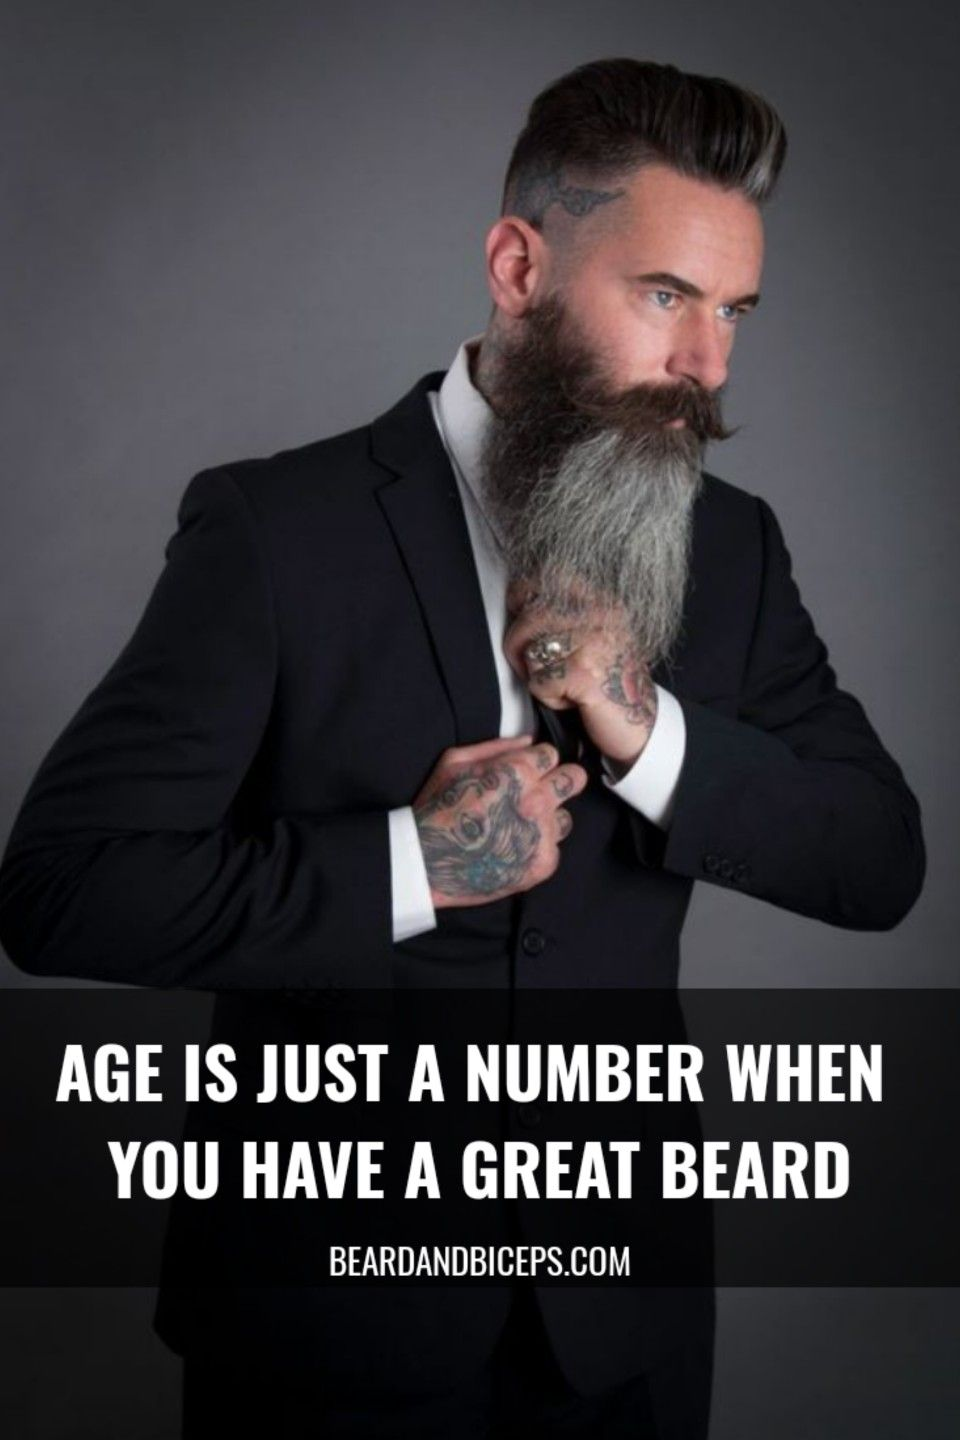 Age Is Just A Number When You Have A Great Beard Awesome Beard Quote By Beardandbiceps Com Beard Love Beard Styles Beard Quotes Great Beards Awesome Beards